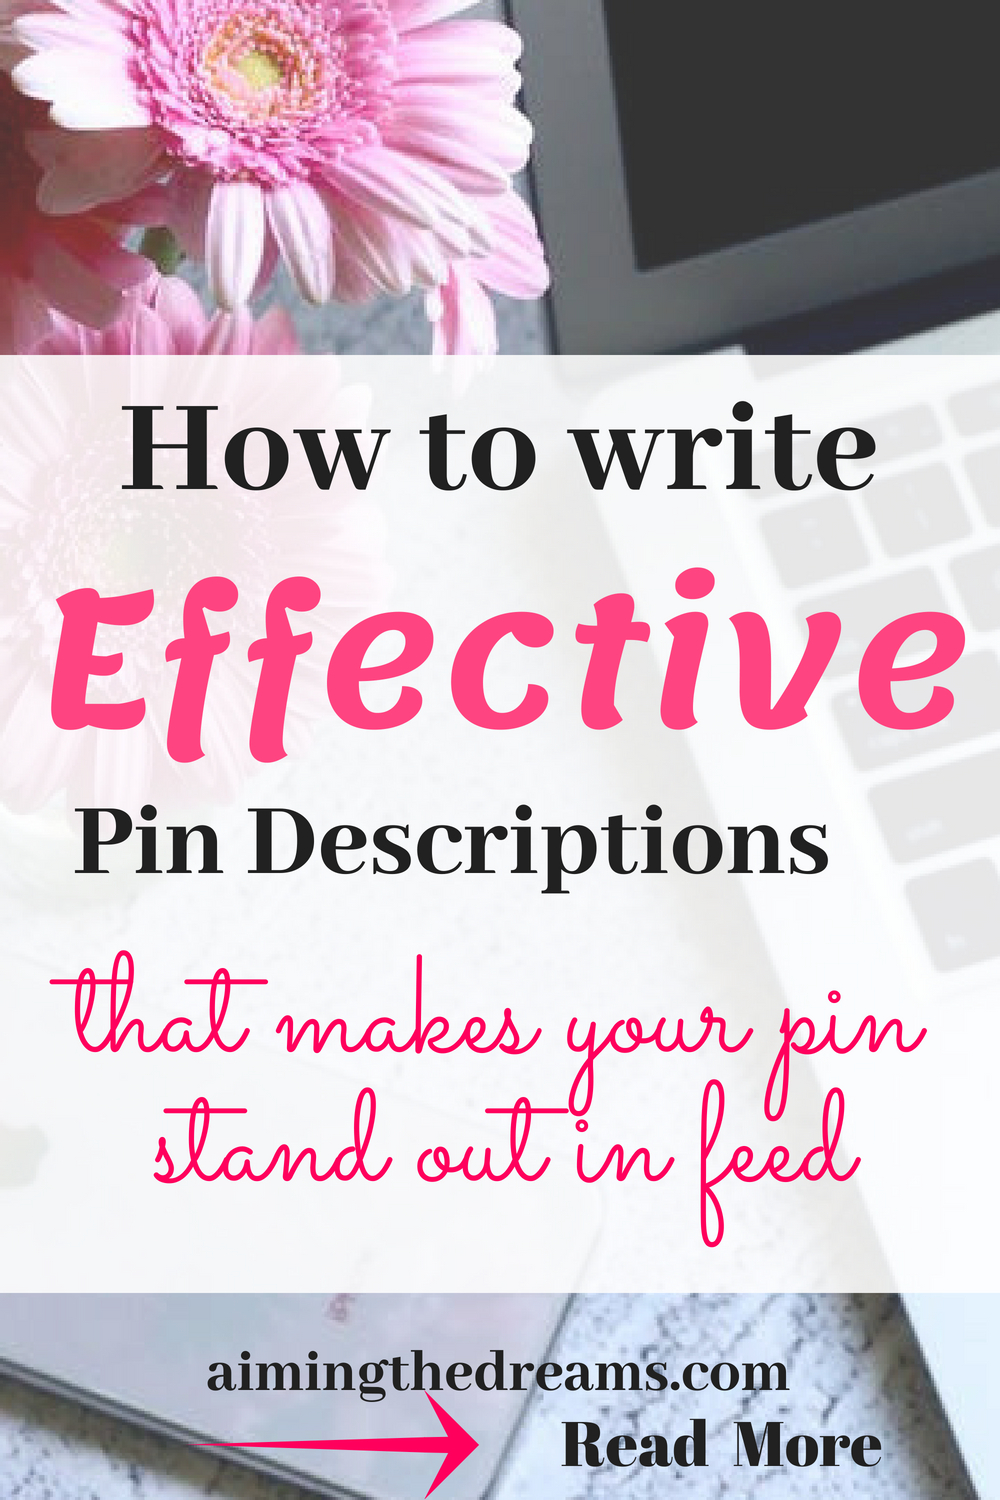 Writing keyword rich description is good for your pins to come up in smart feed.